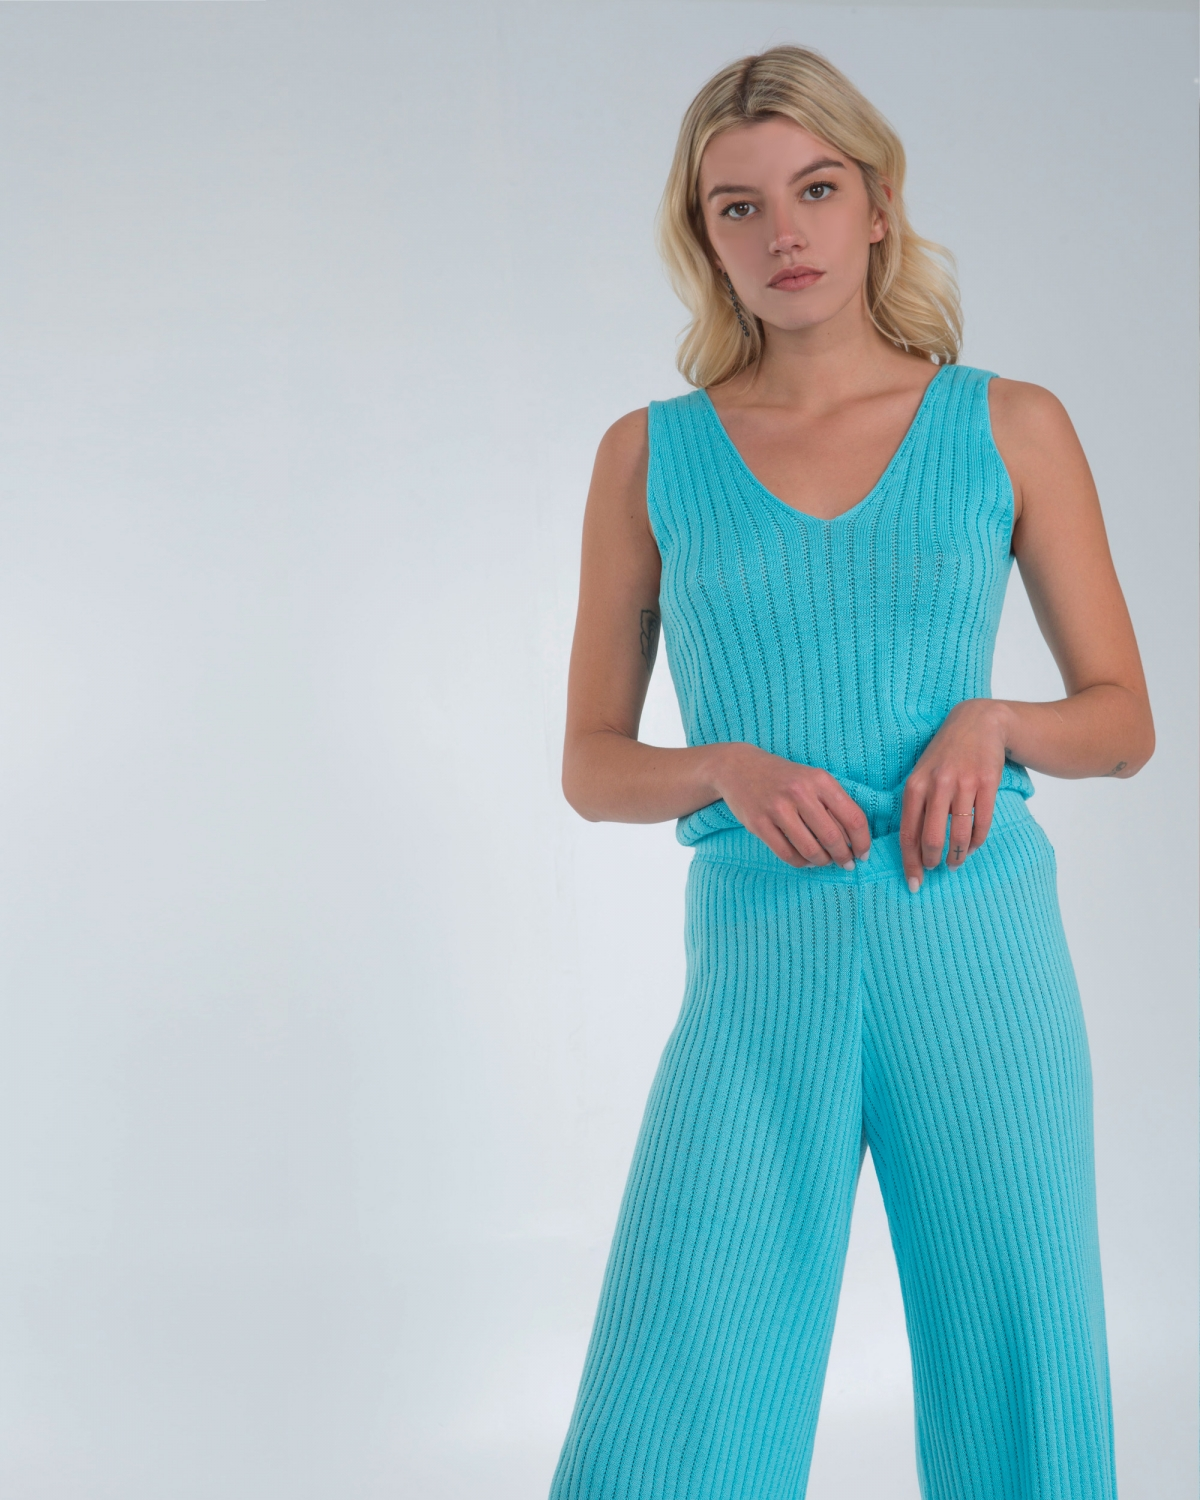 Ribbed Knit Blue Top